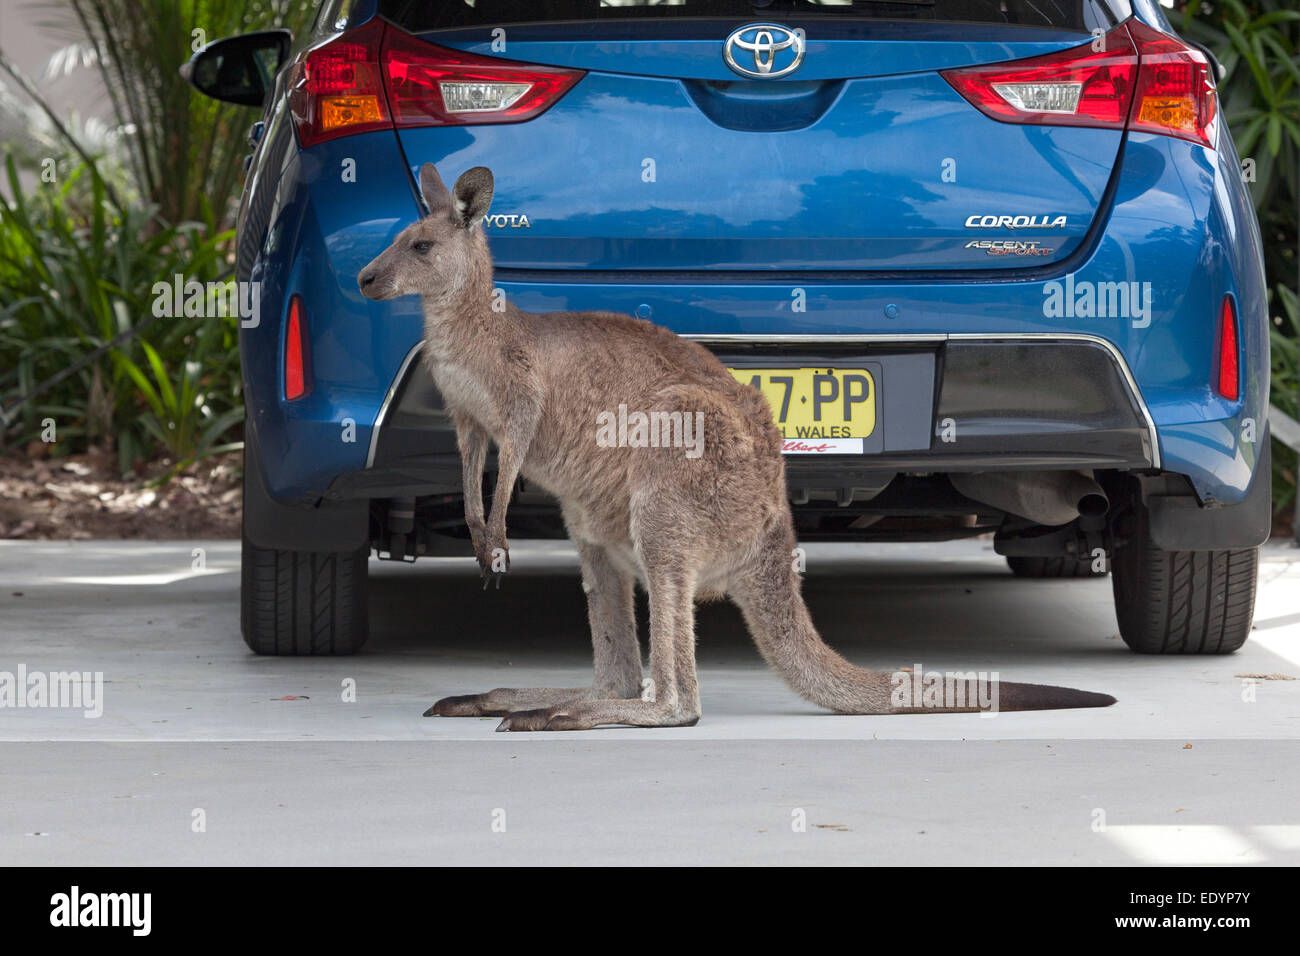 Kangaroo in front of a parked car in New South Wales,Australia - Stock Image